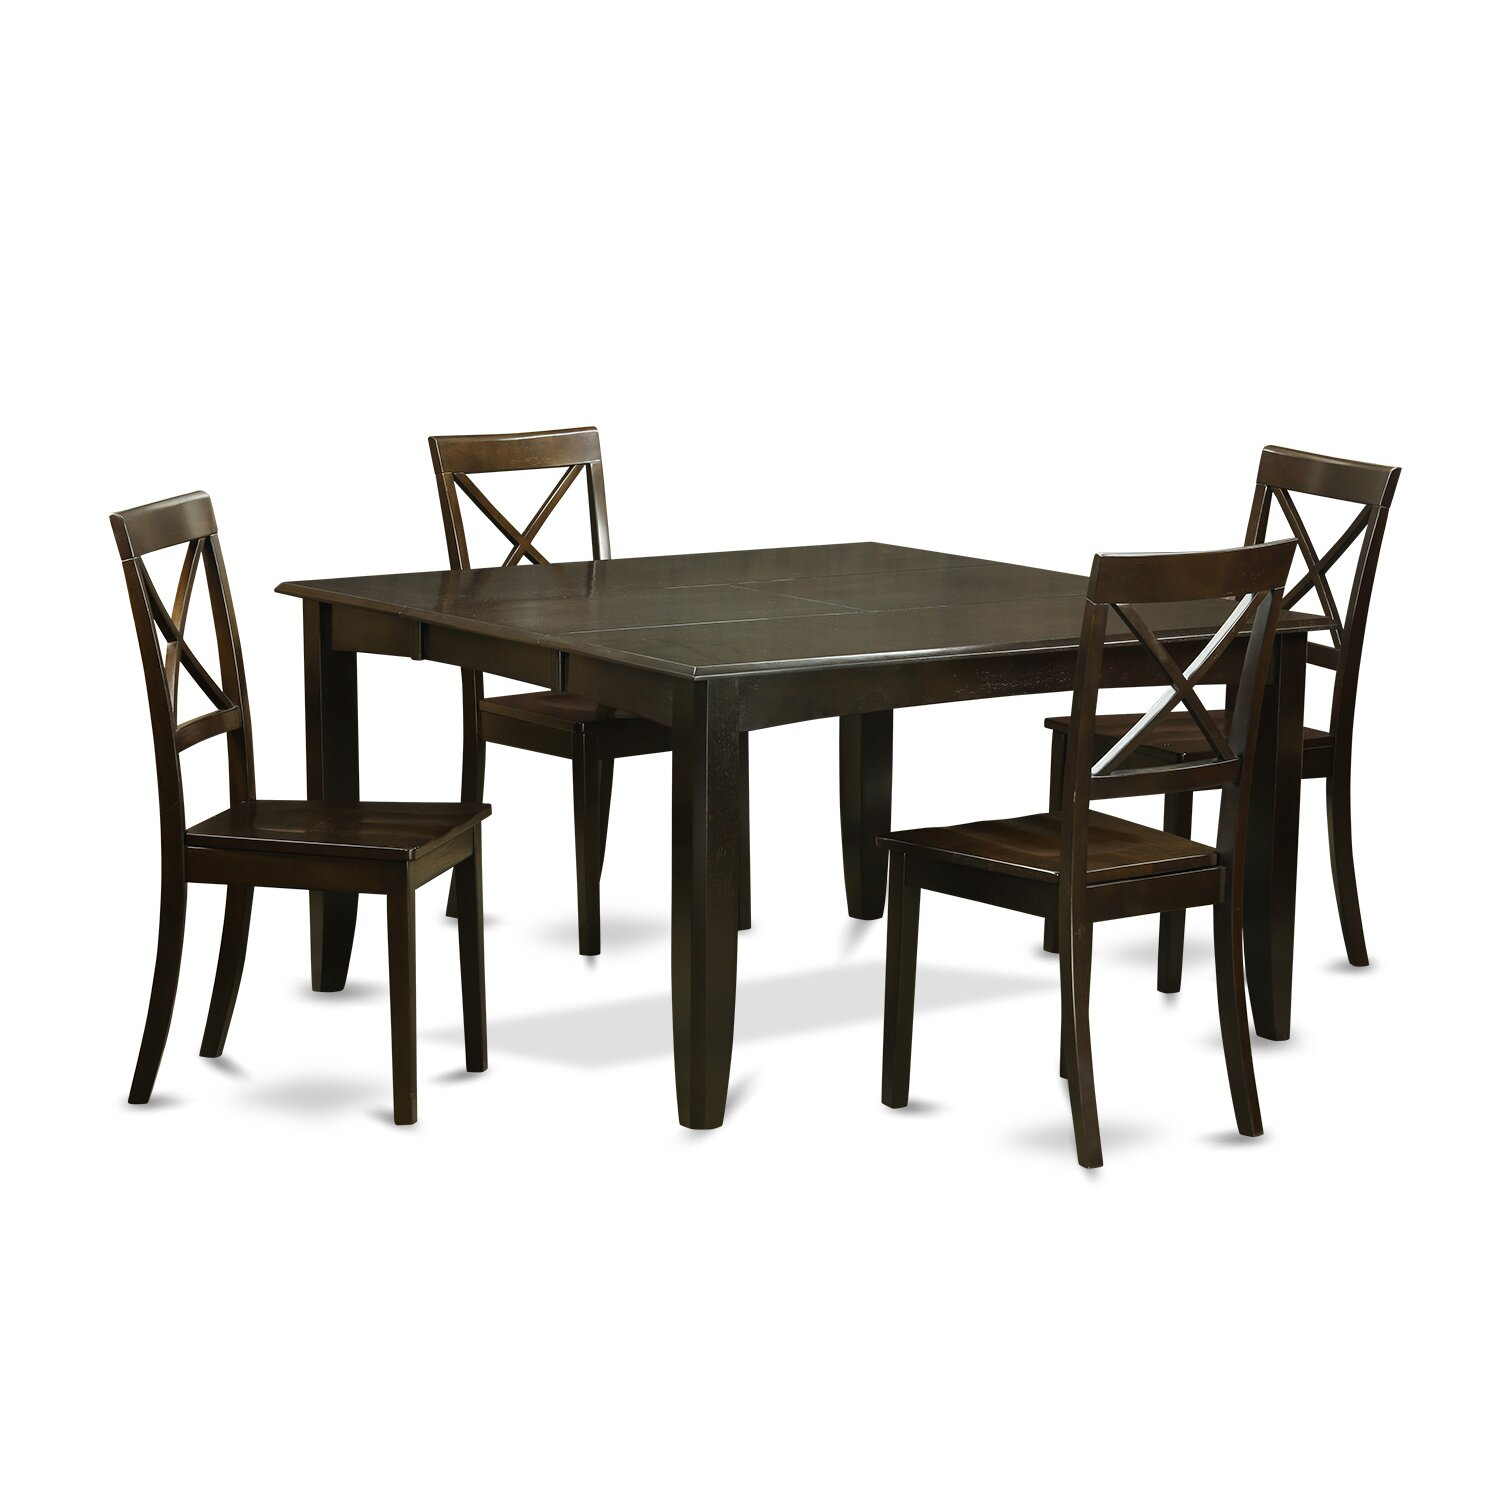 PC-Dining-Table-Set-Dining-Table-with-Leaf-and-4-Kitchen-Chairs ...